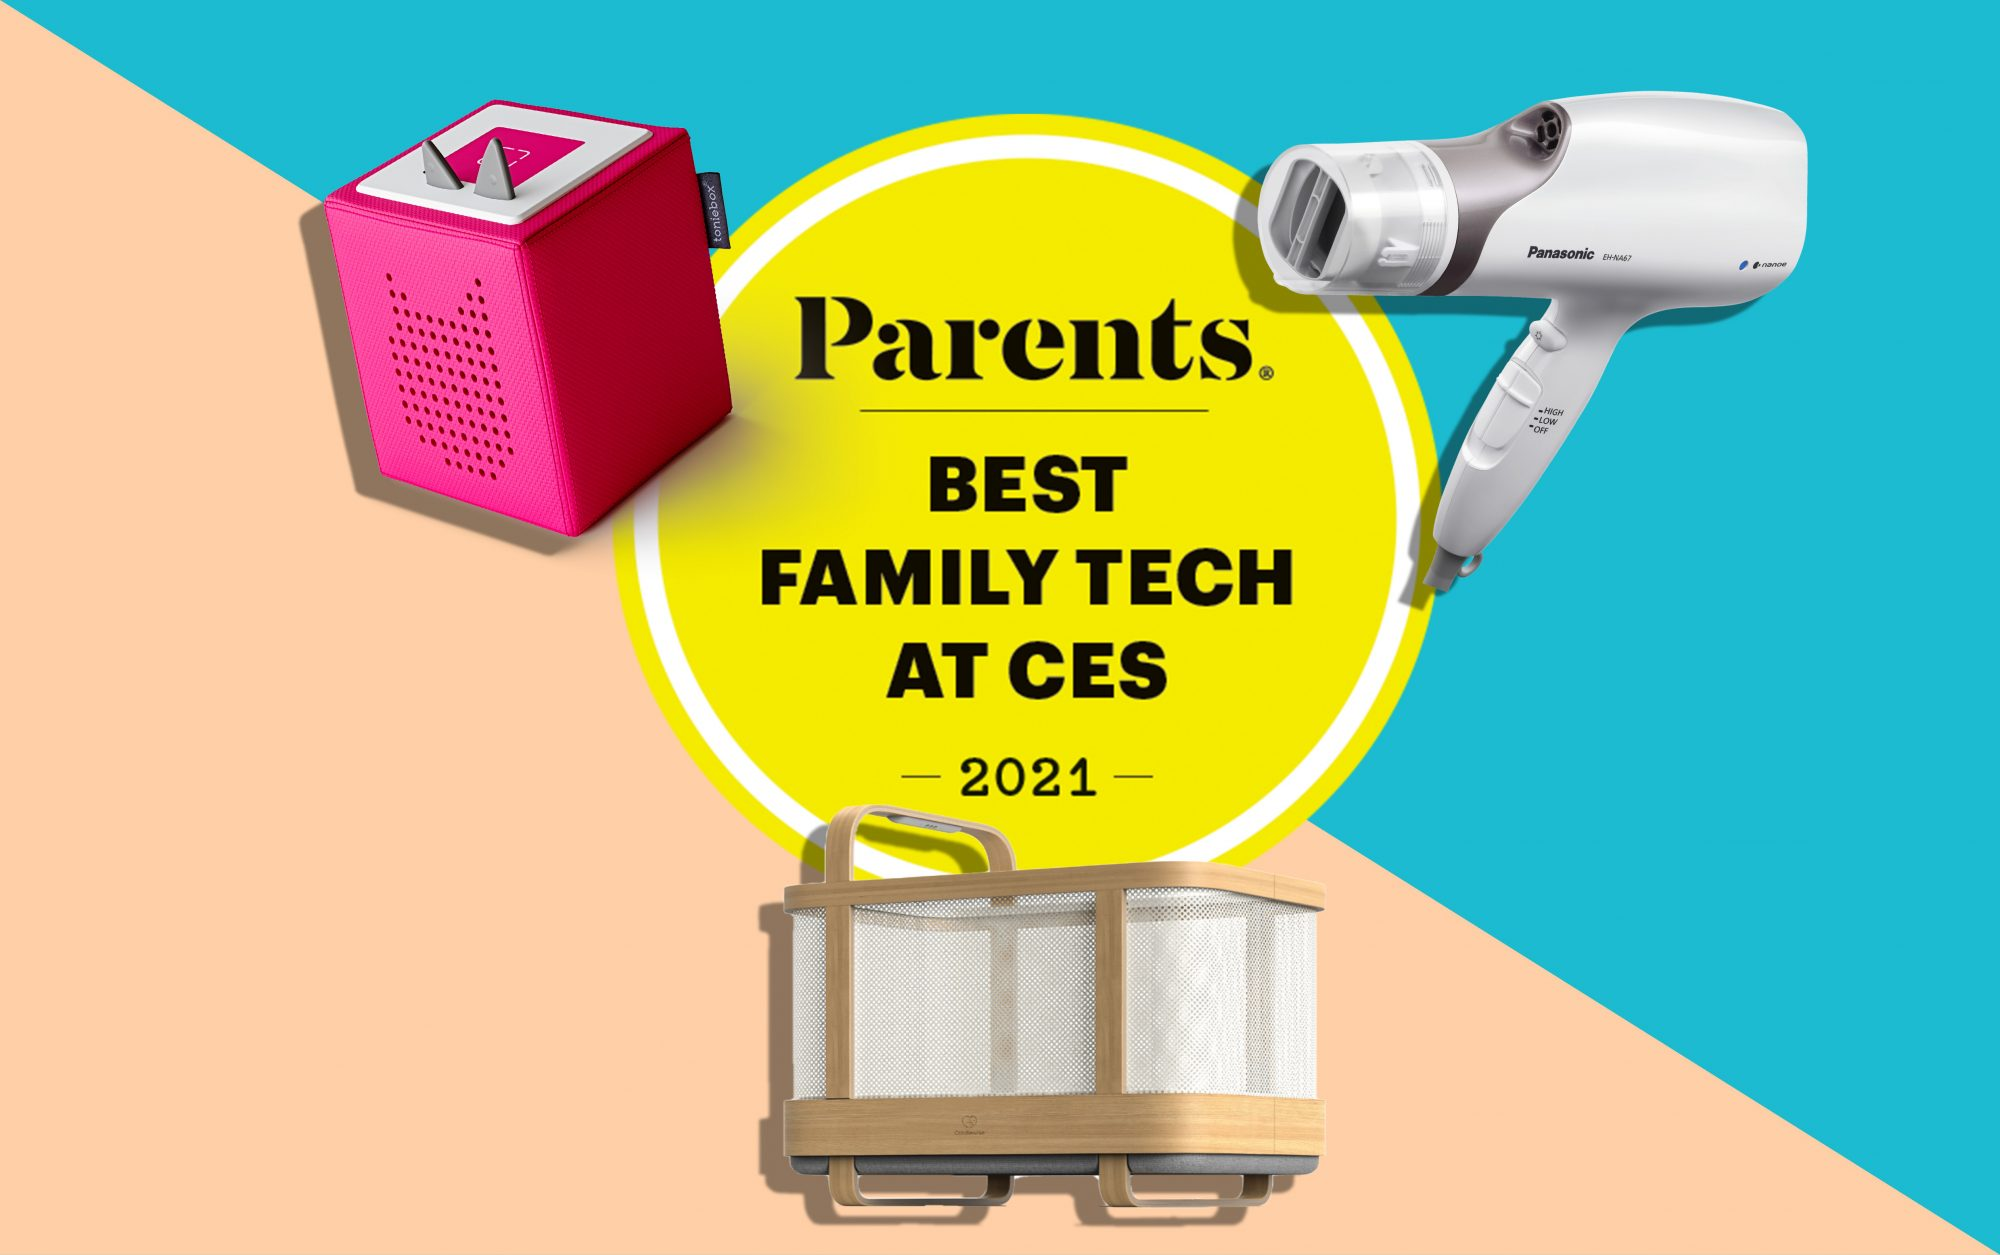 A composite of some of the best family tech at CES.